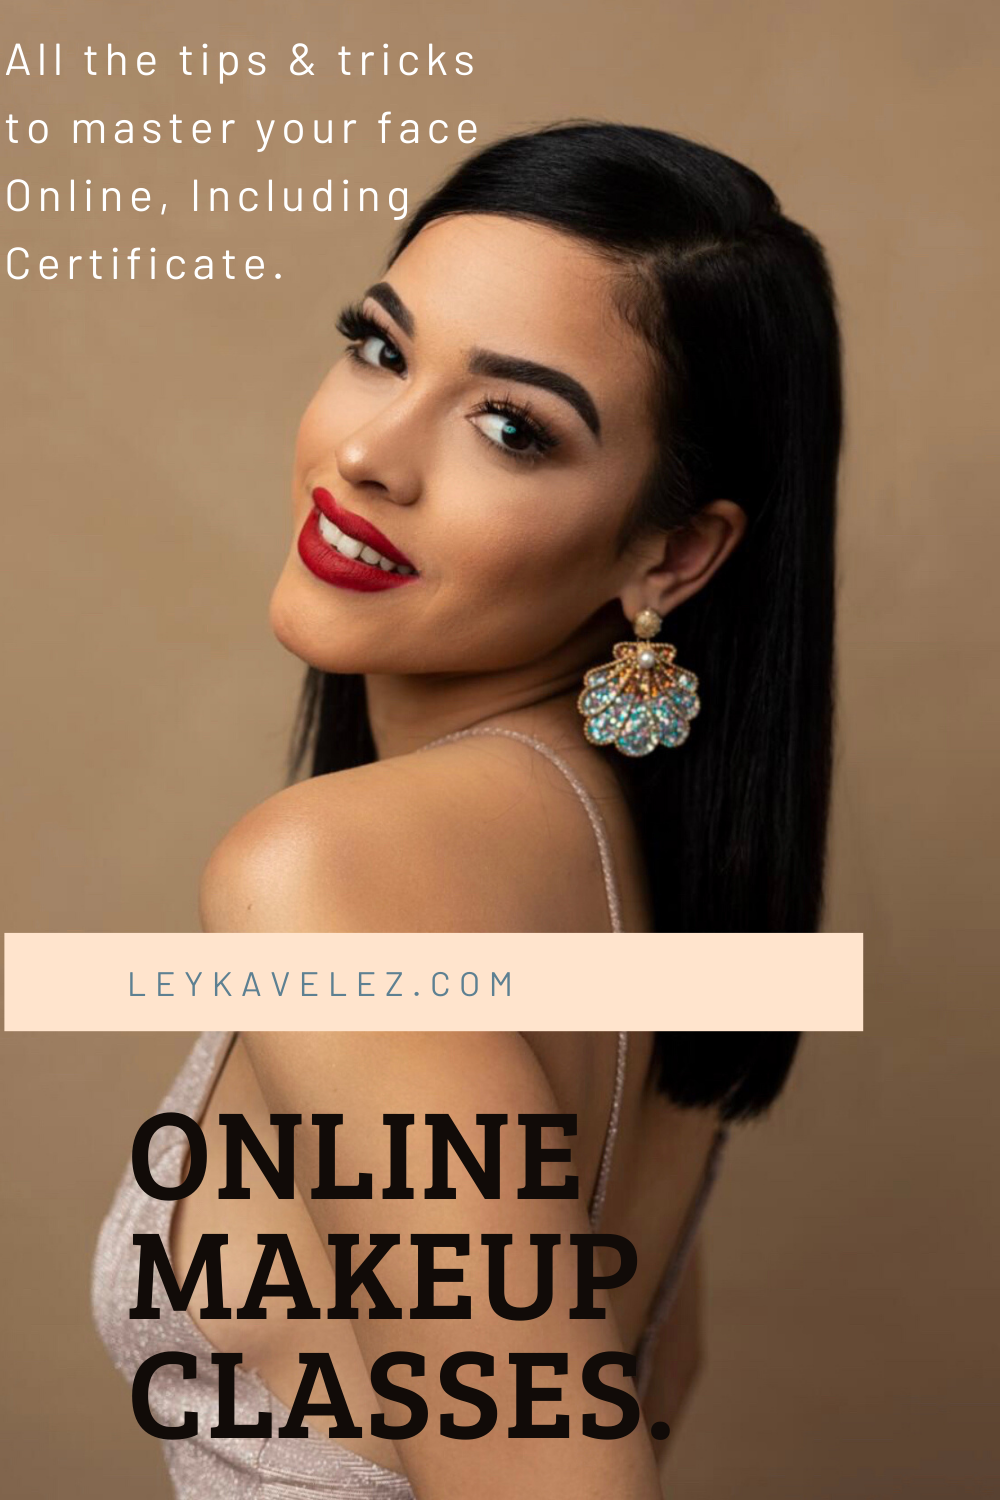 ONLINE MAKEUP CLASSES in 2020 Online makeup, Nyc makeup